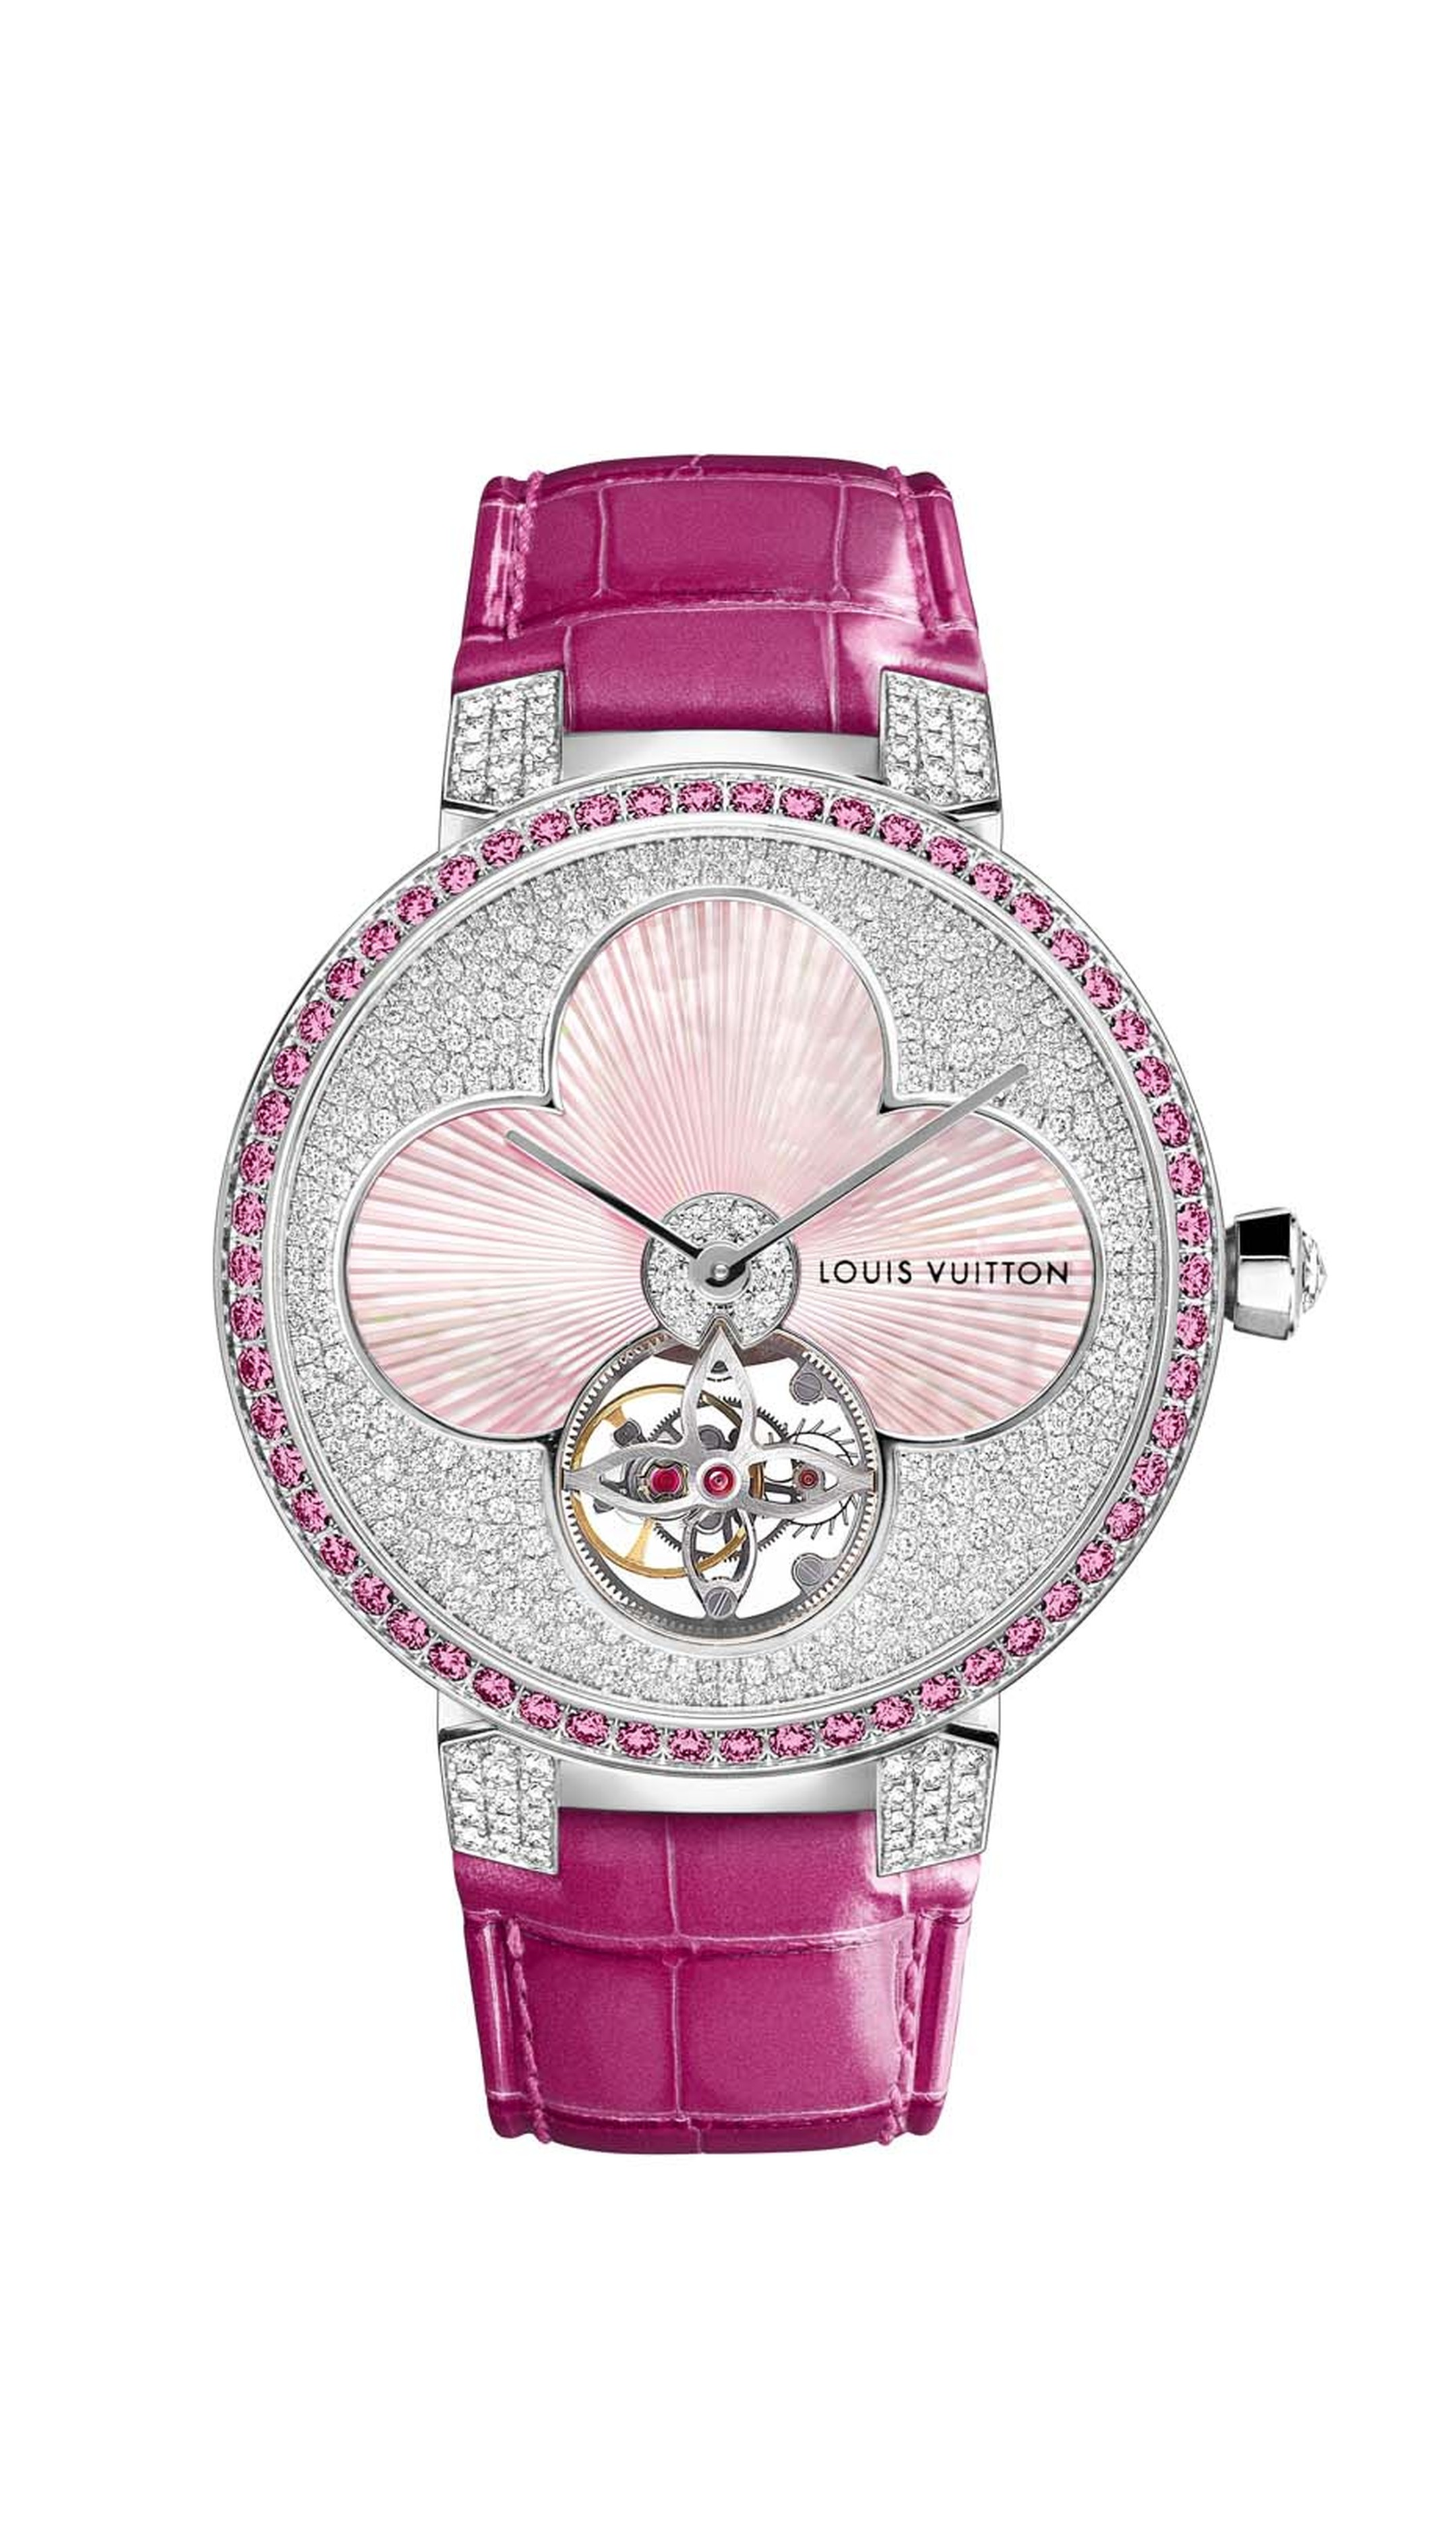 Louis Vuitton's new Tambour Monogram Sun Tourbillon ladies' watches come in a choice of three colours. In the rose version, the mother-of-pearl flower, snow set with diamonds, is surrounded by a ring of pink sapphires and finished with a fuchsia alligator